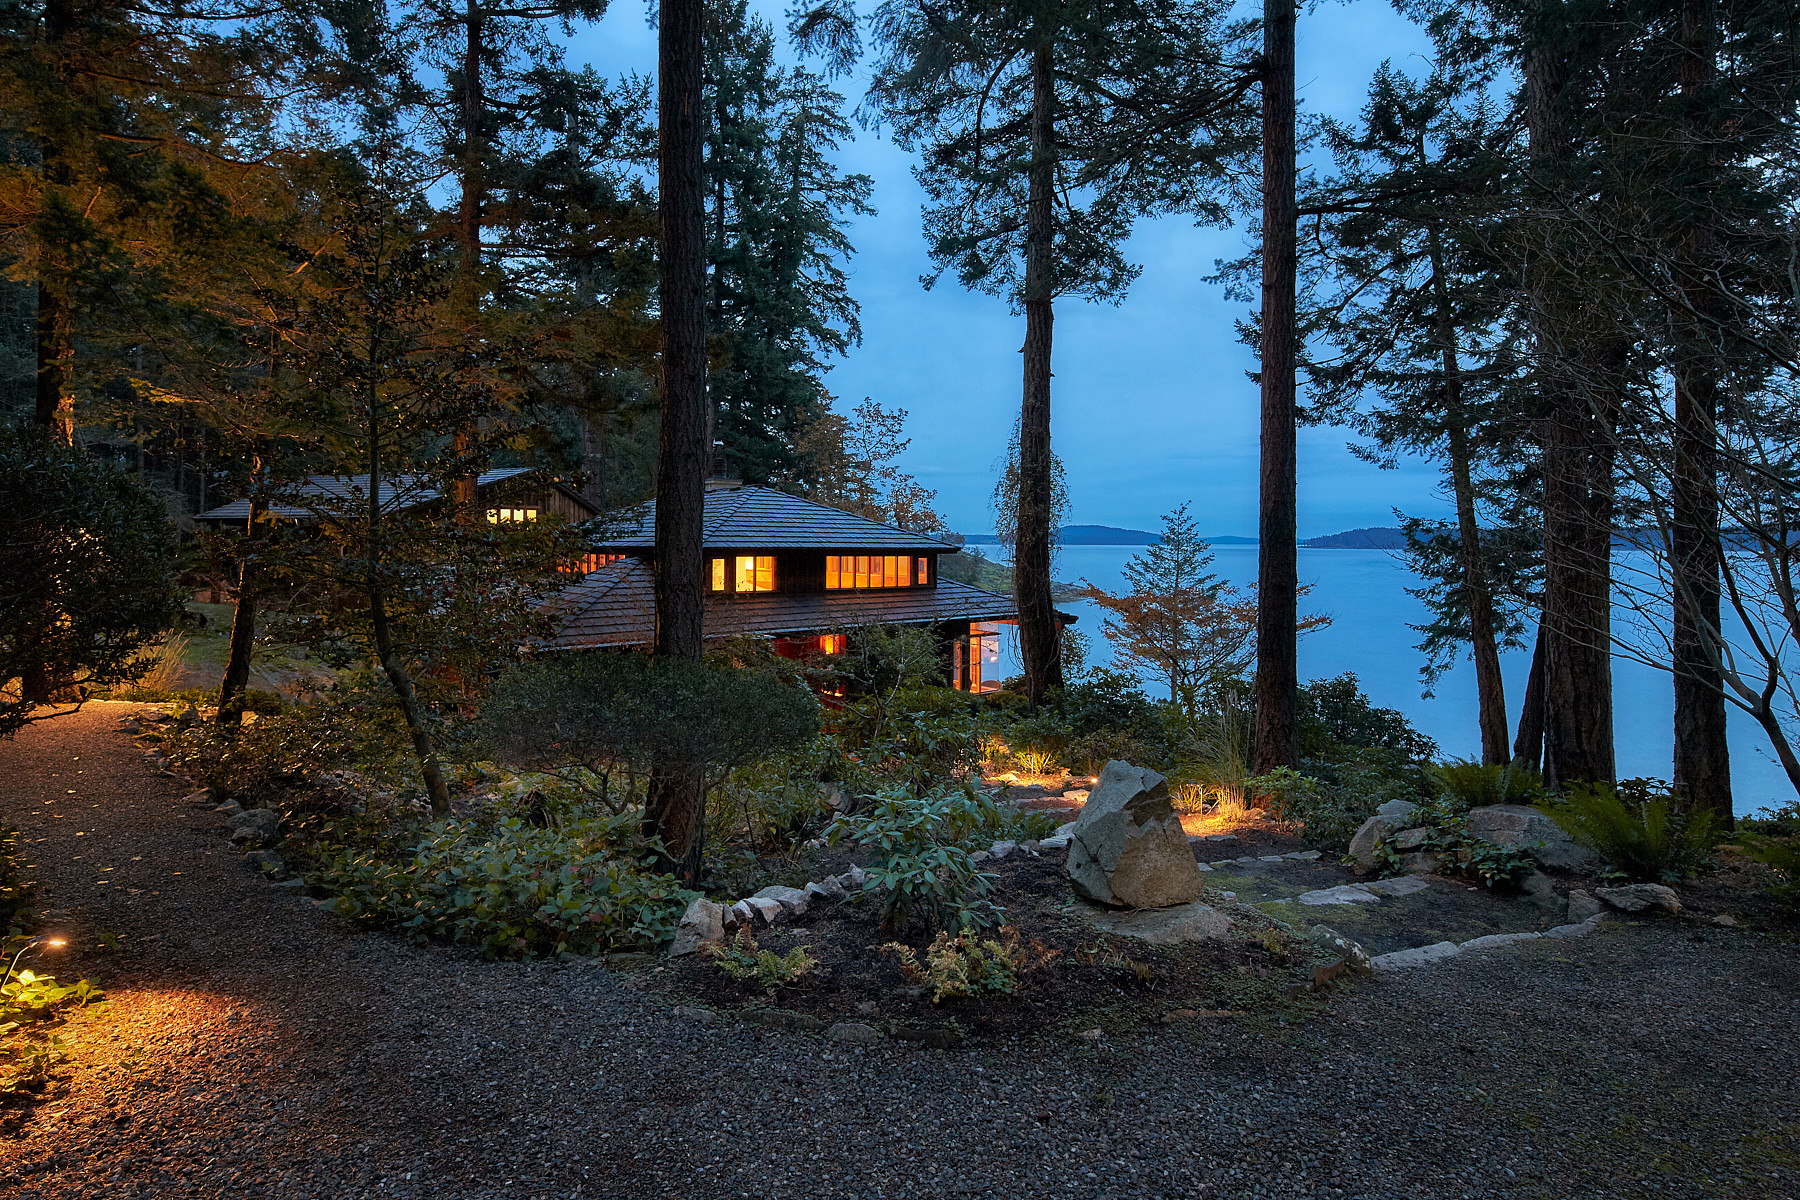 Casa Unifamiliar por un Venta en South Facing Oceanfront Estate 229 Bay Ridge Place, Salt Spring Island, British Columbia, V8K 1W5 Canadá